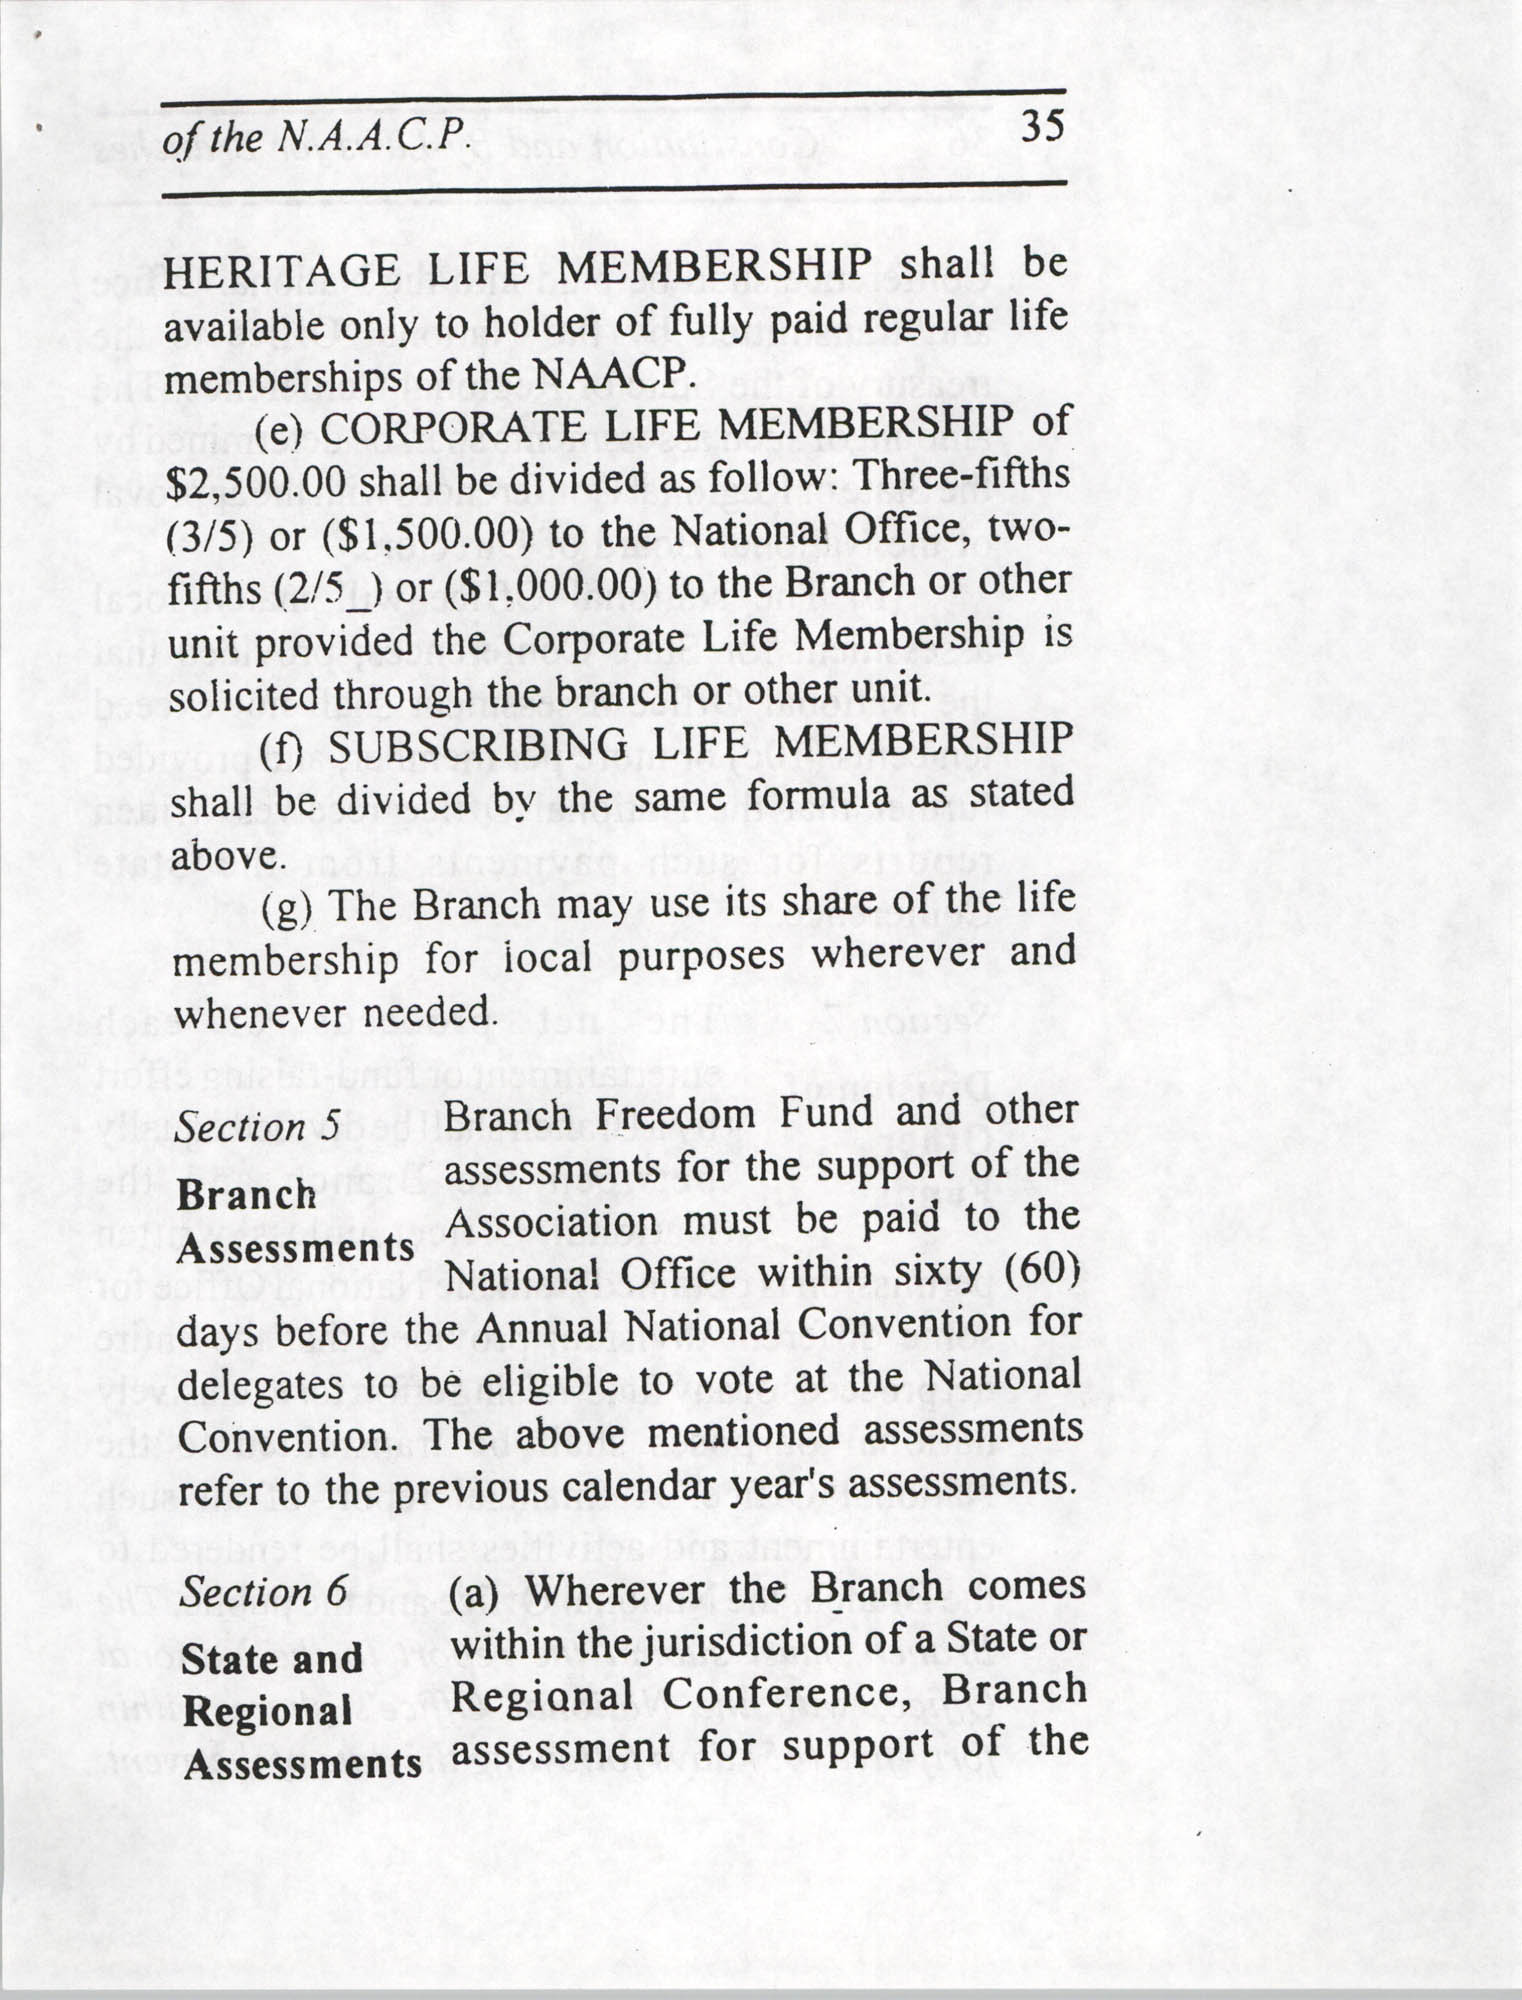 Constitution and By-Laws for Branches of the NAACP, July 1994, Page 35